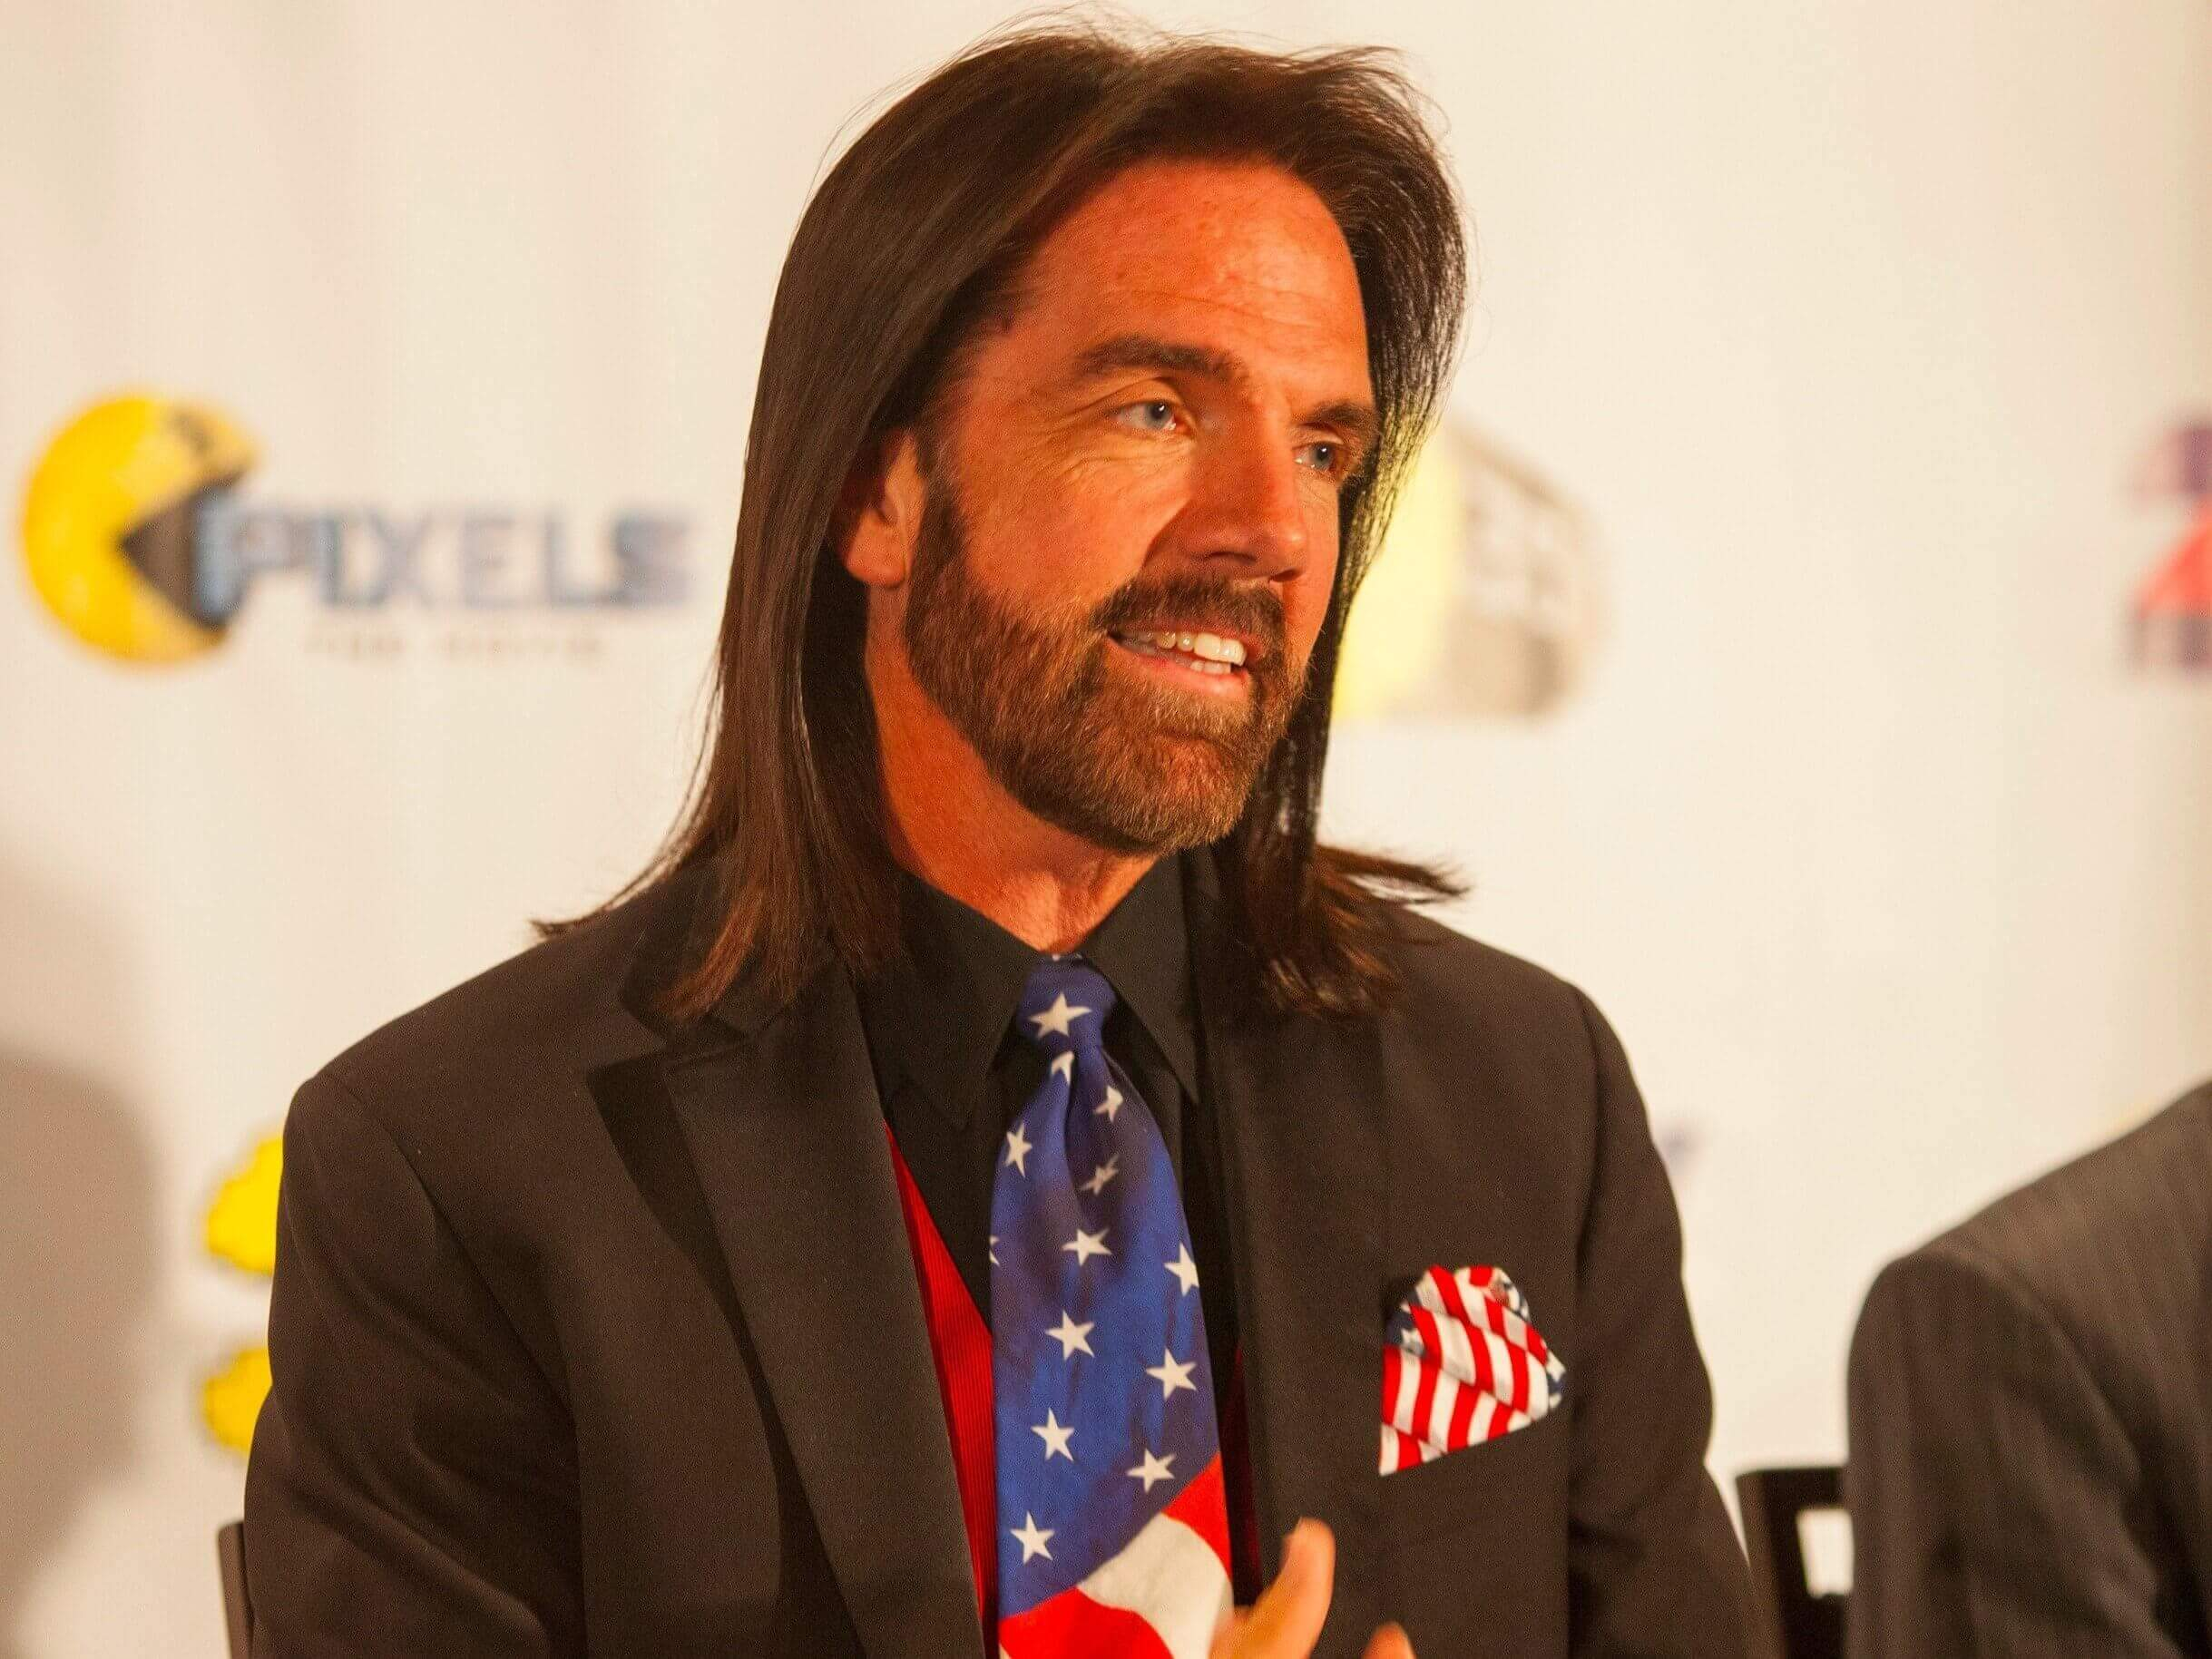 Billy Mitchell's libel case over Donkey Kong cheating scandal set for July